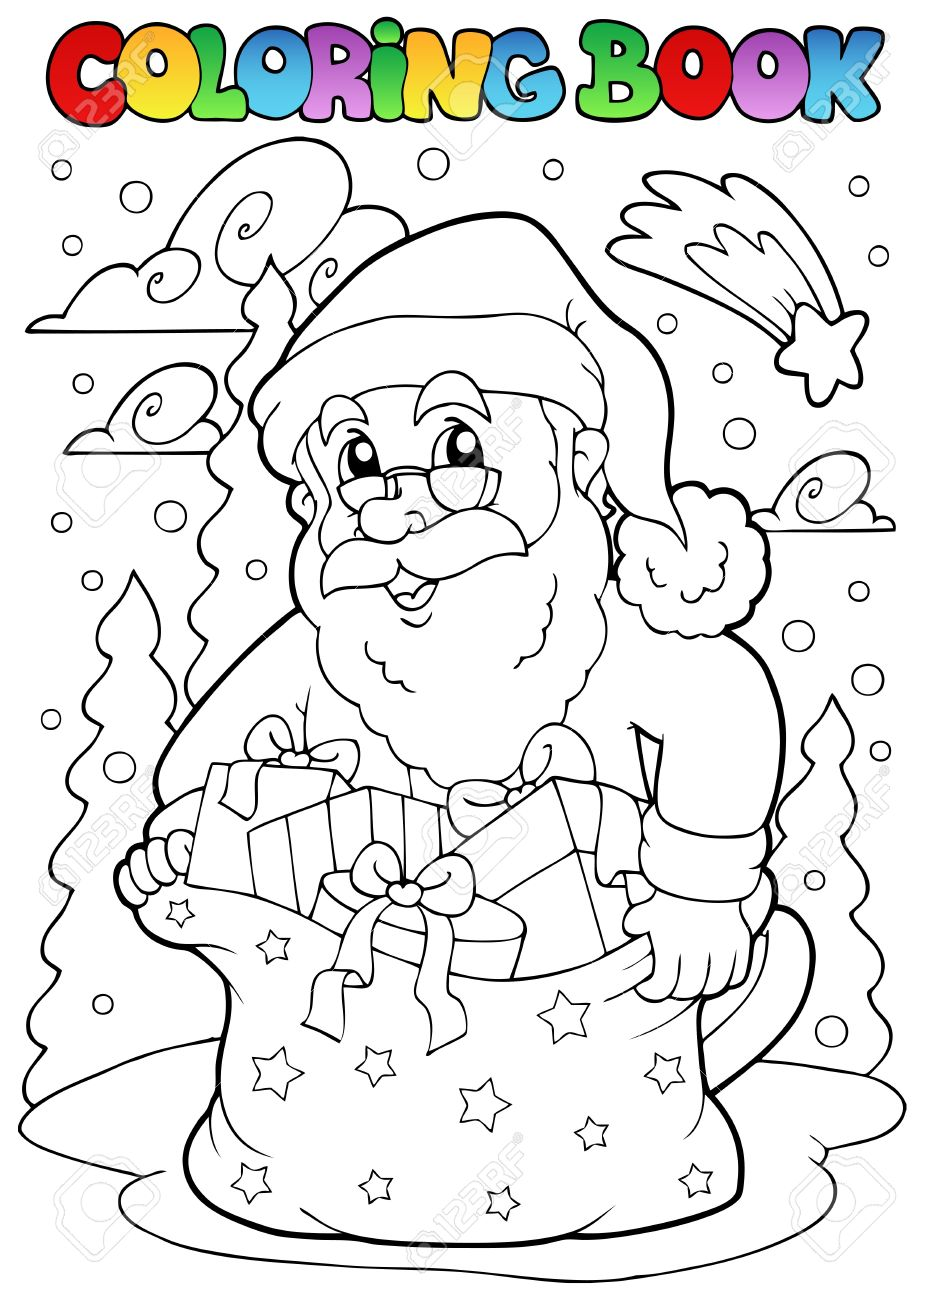 Coloring book Santa Claus theme 3 - vector illustration. Stock Vector - 10912674